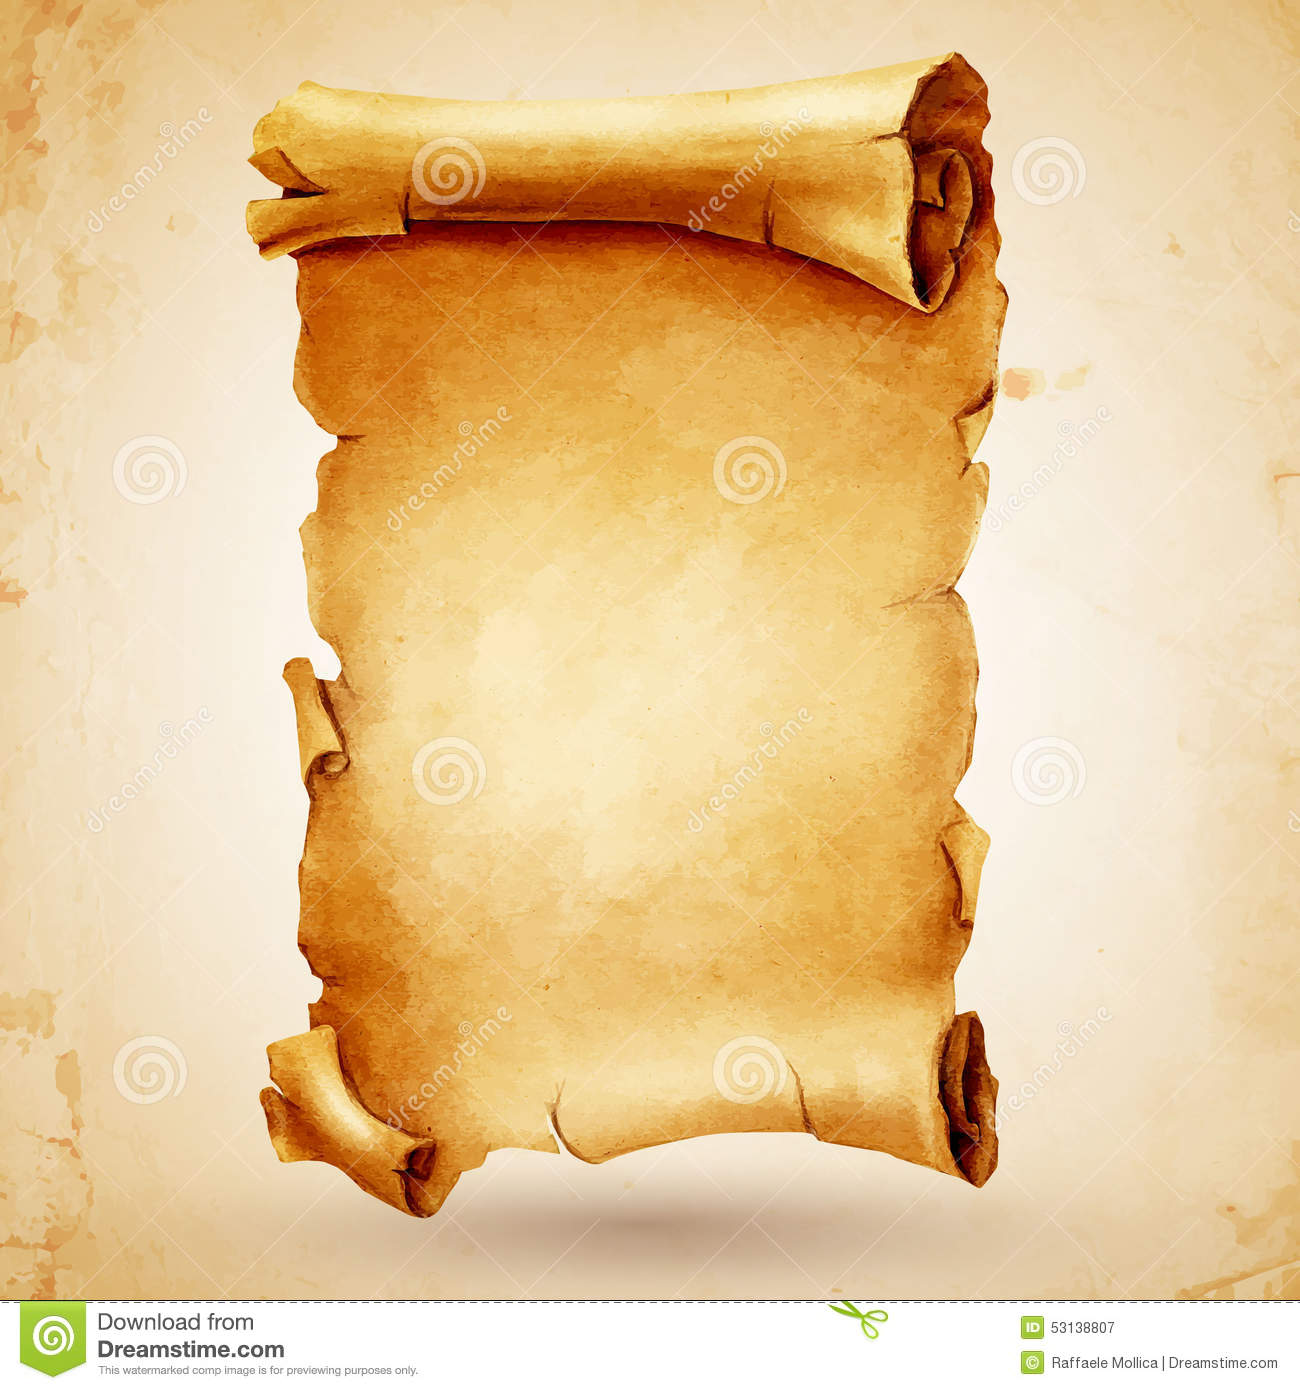 Pergamena ancient scroll stock vector. Image of picture ...